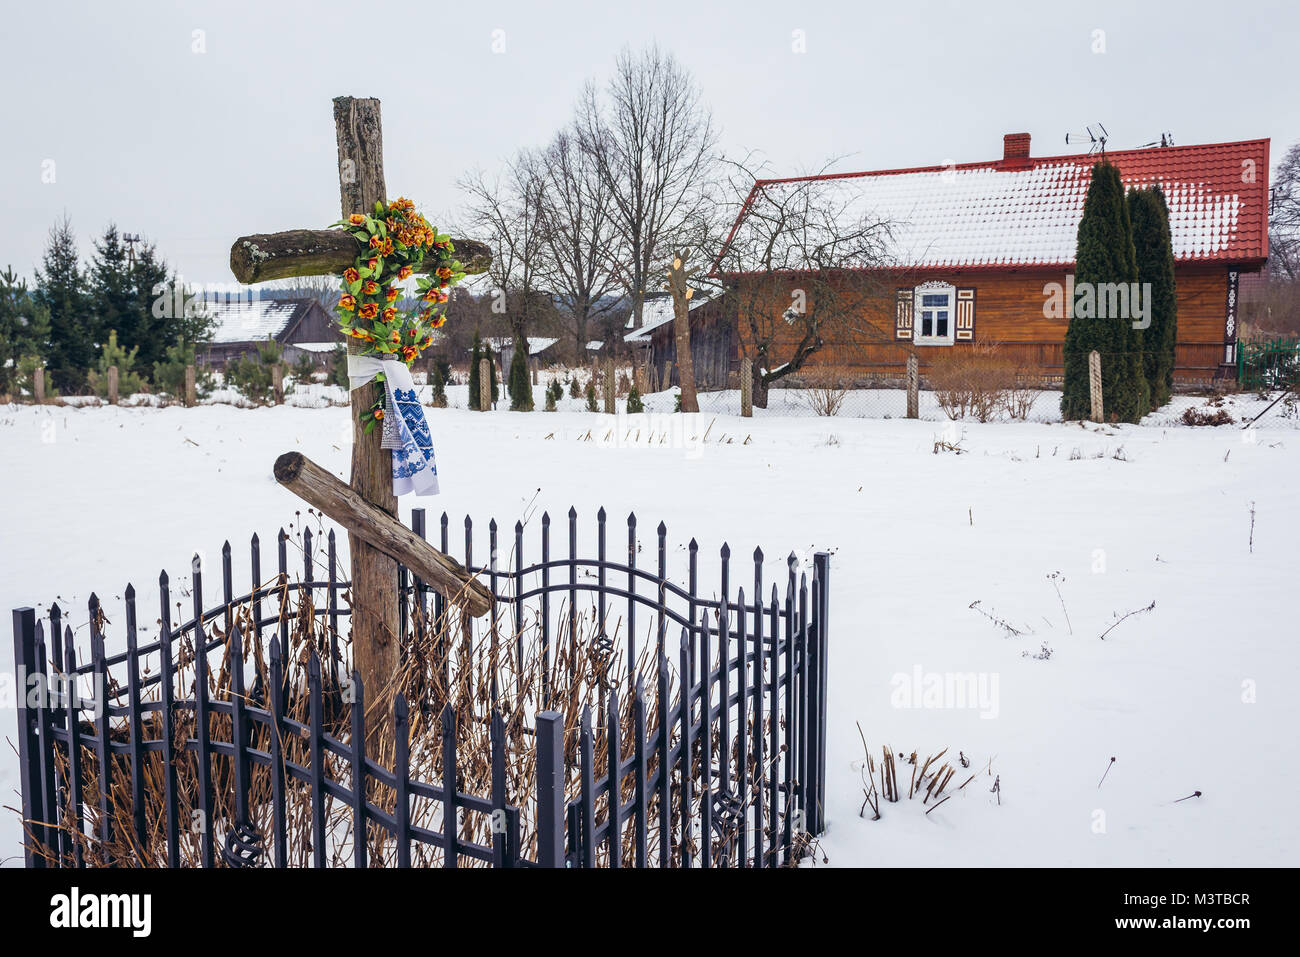 Old wayside cross in Soce village on so called The Land of Open Shutters trail, famous for traditional architecture - Stock Image